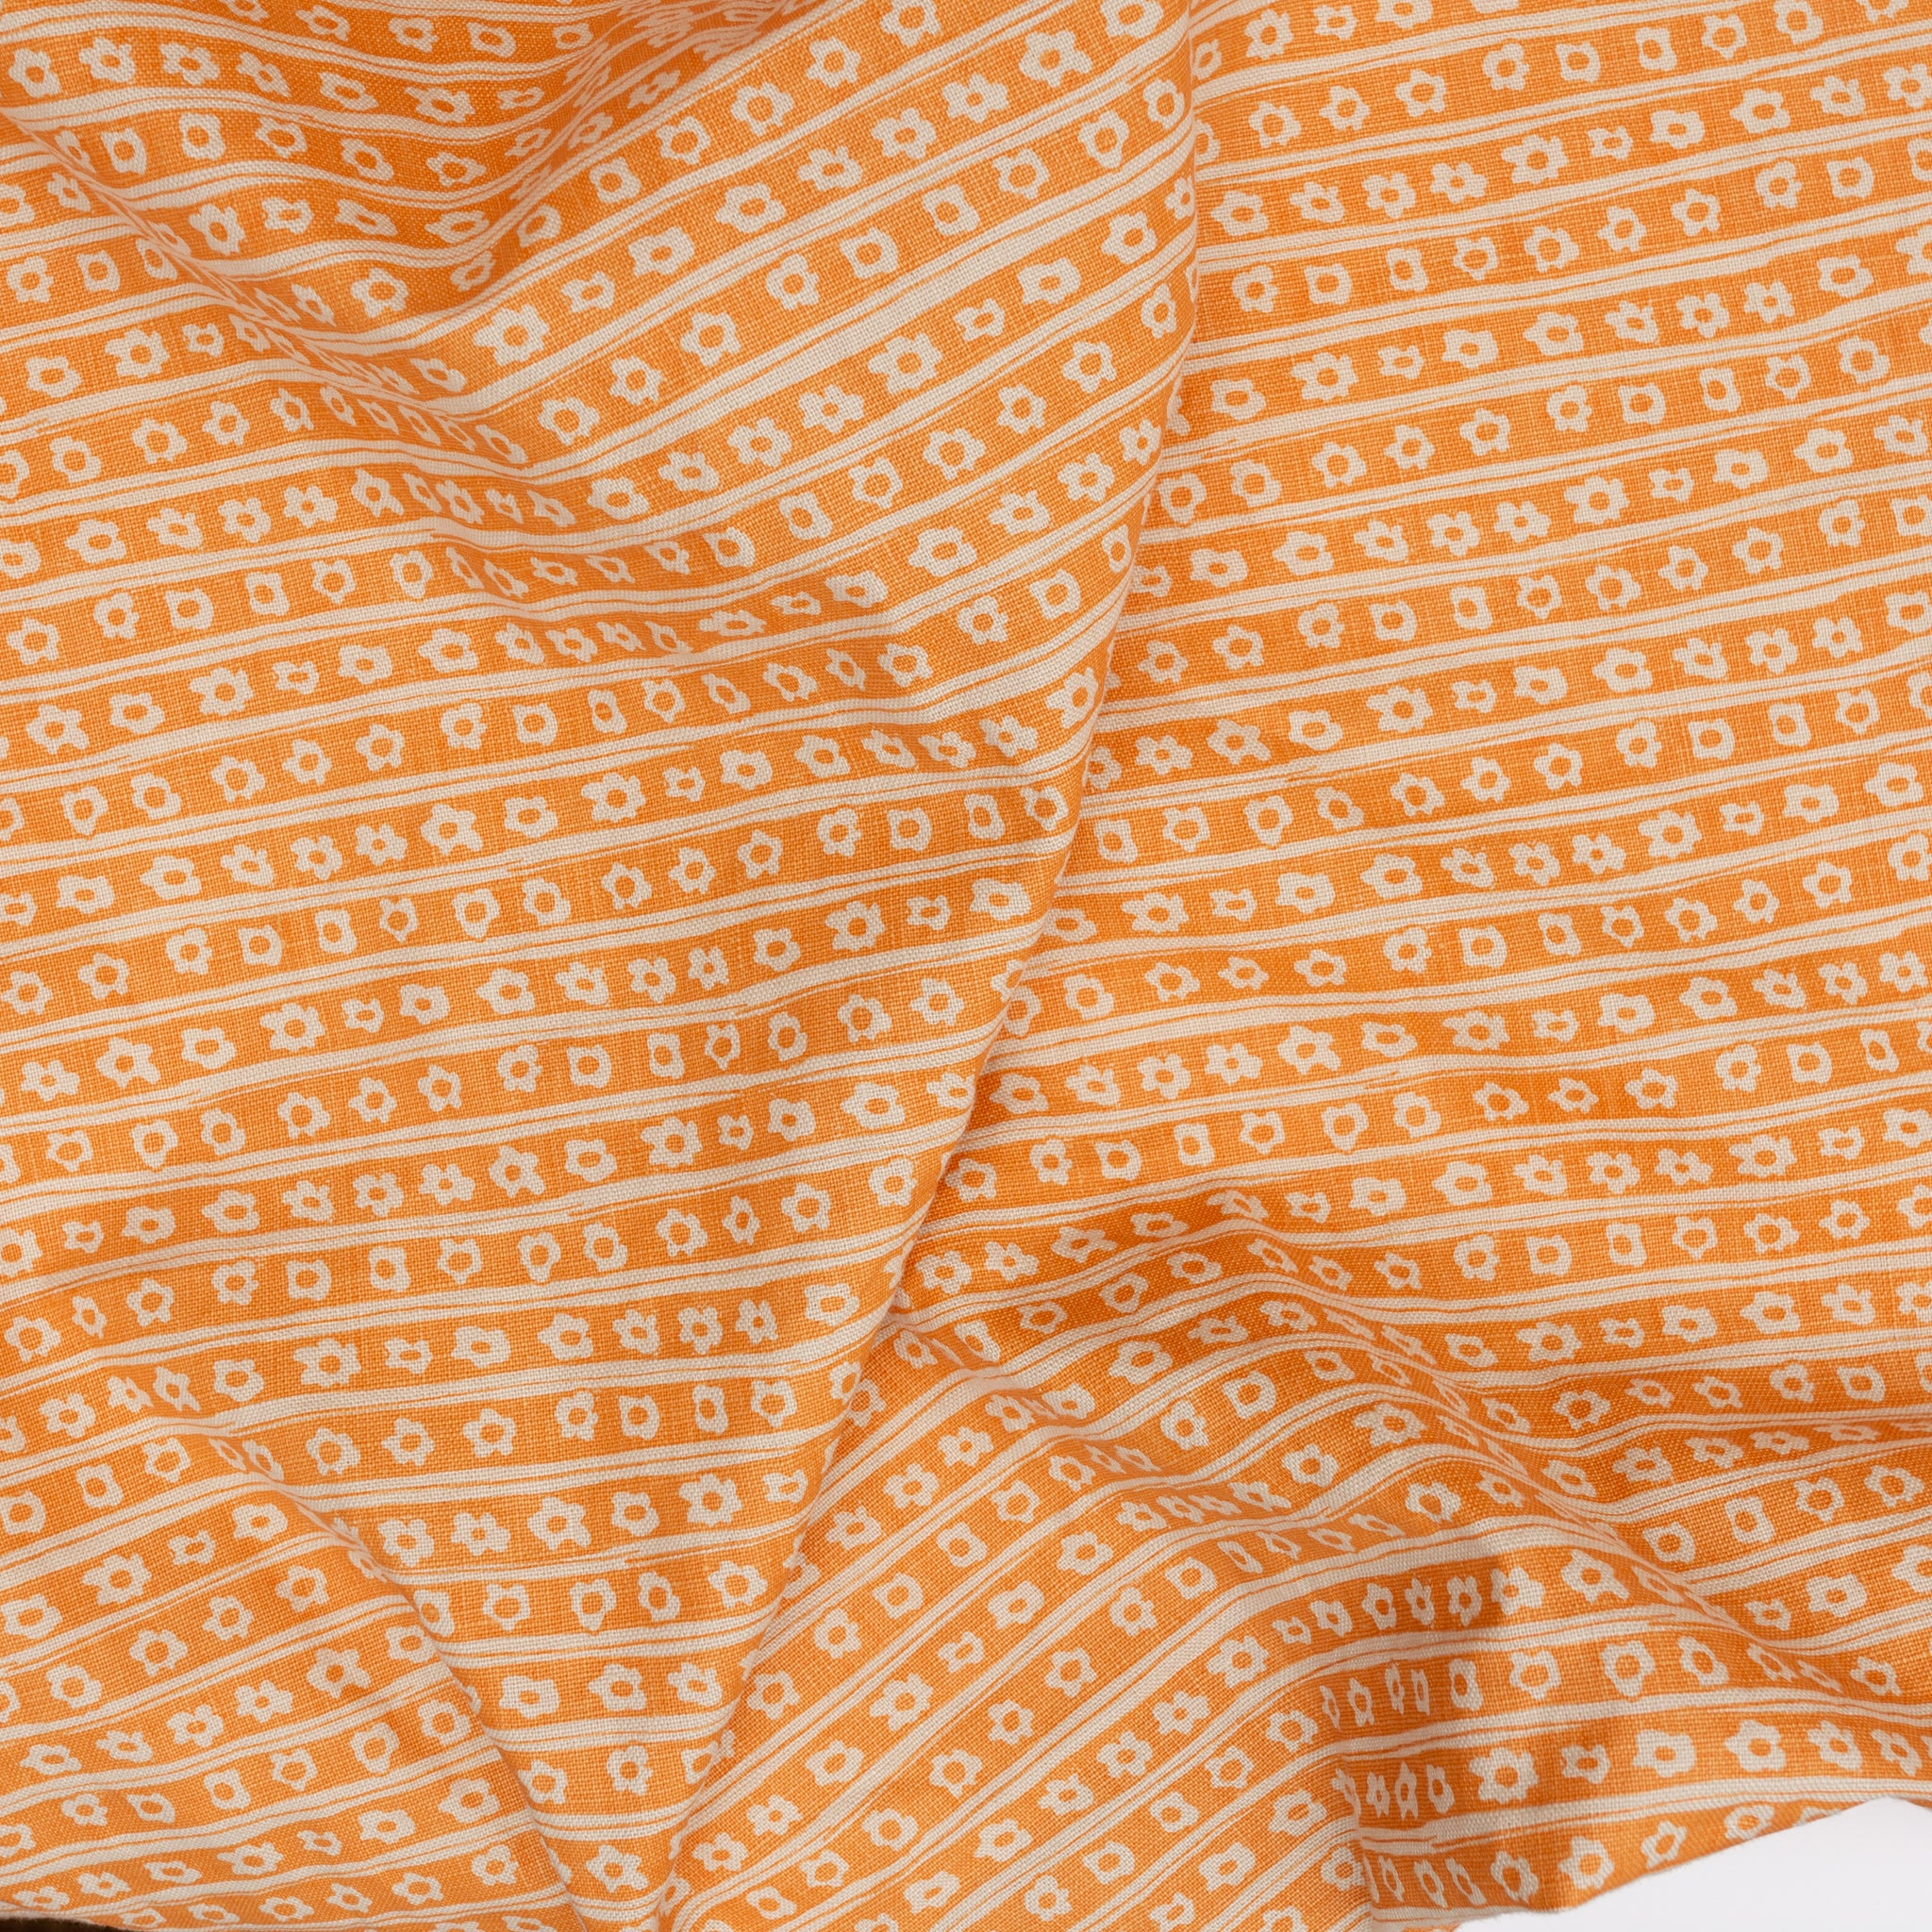 Daisy Pinstripe in Clementine screen printed onto linen fabric